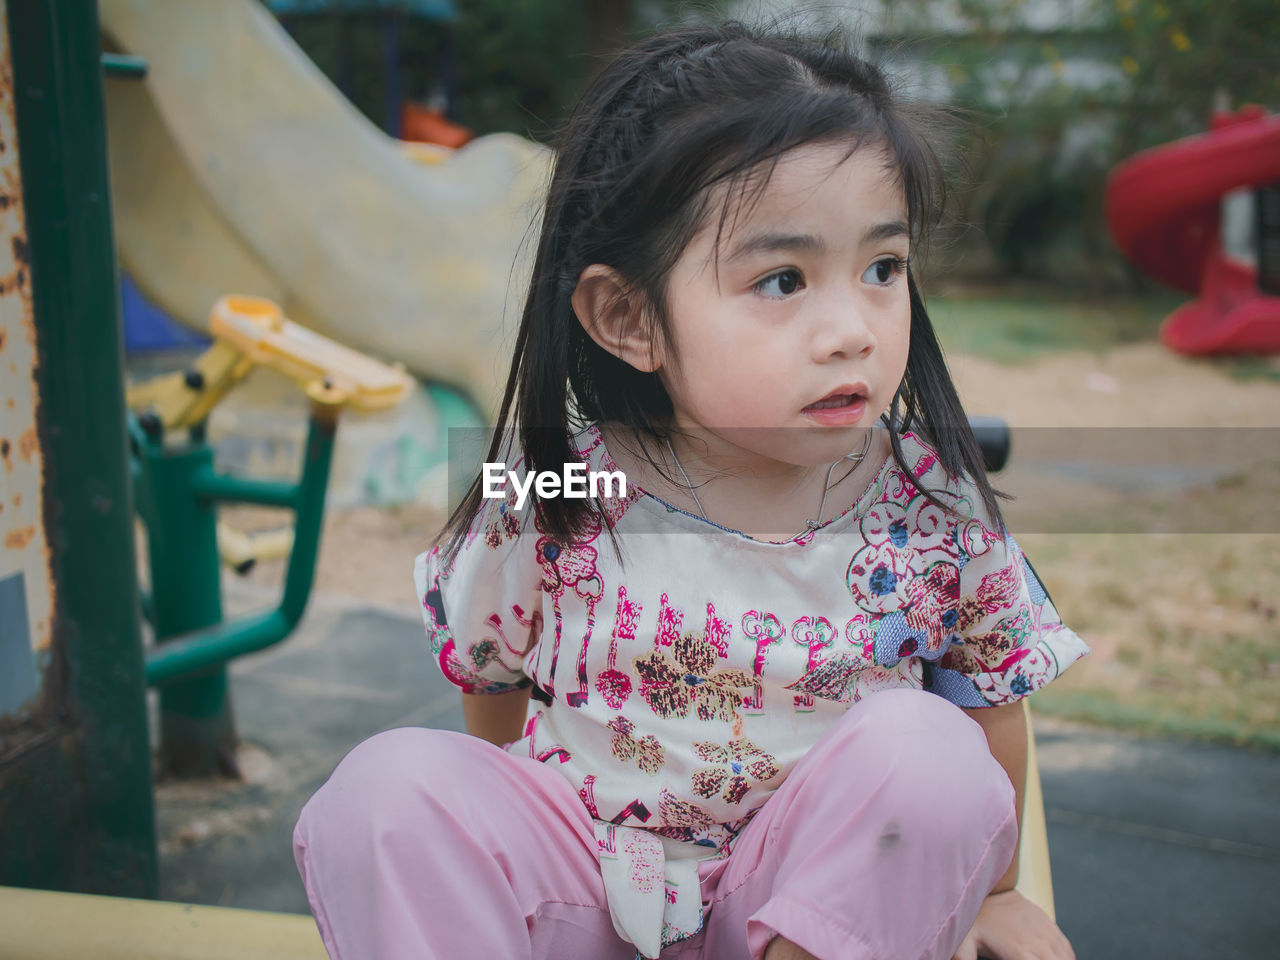 Cute girl looking away while sitting at playground